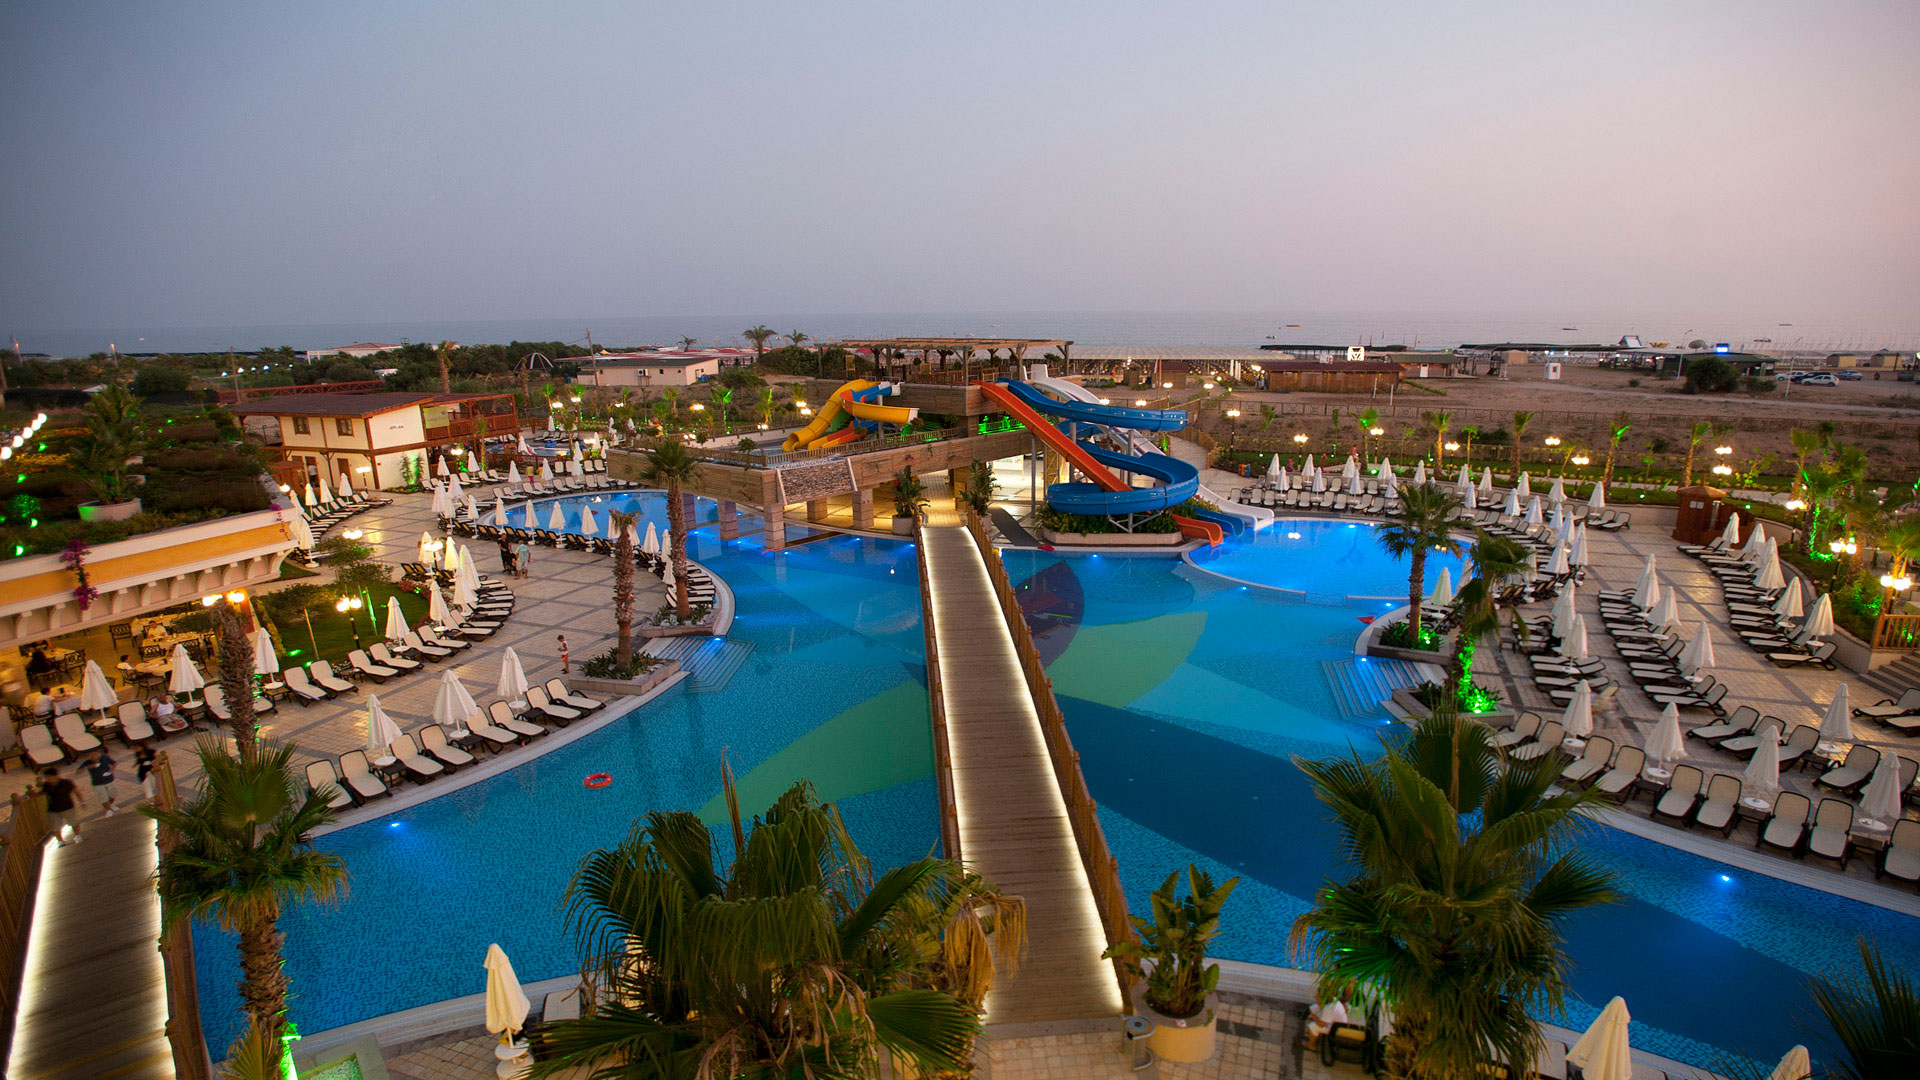 CRYSTAL PALACE LUXURY RESORT & SPA HOTEL Genel